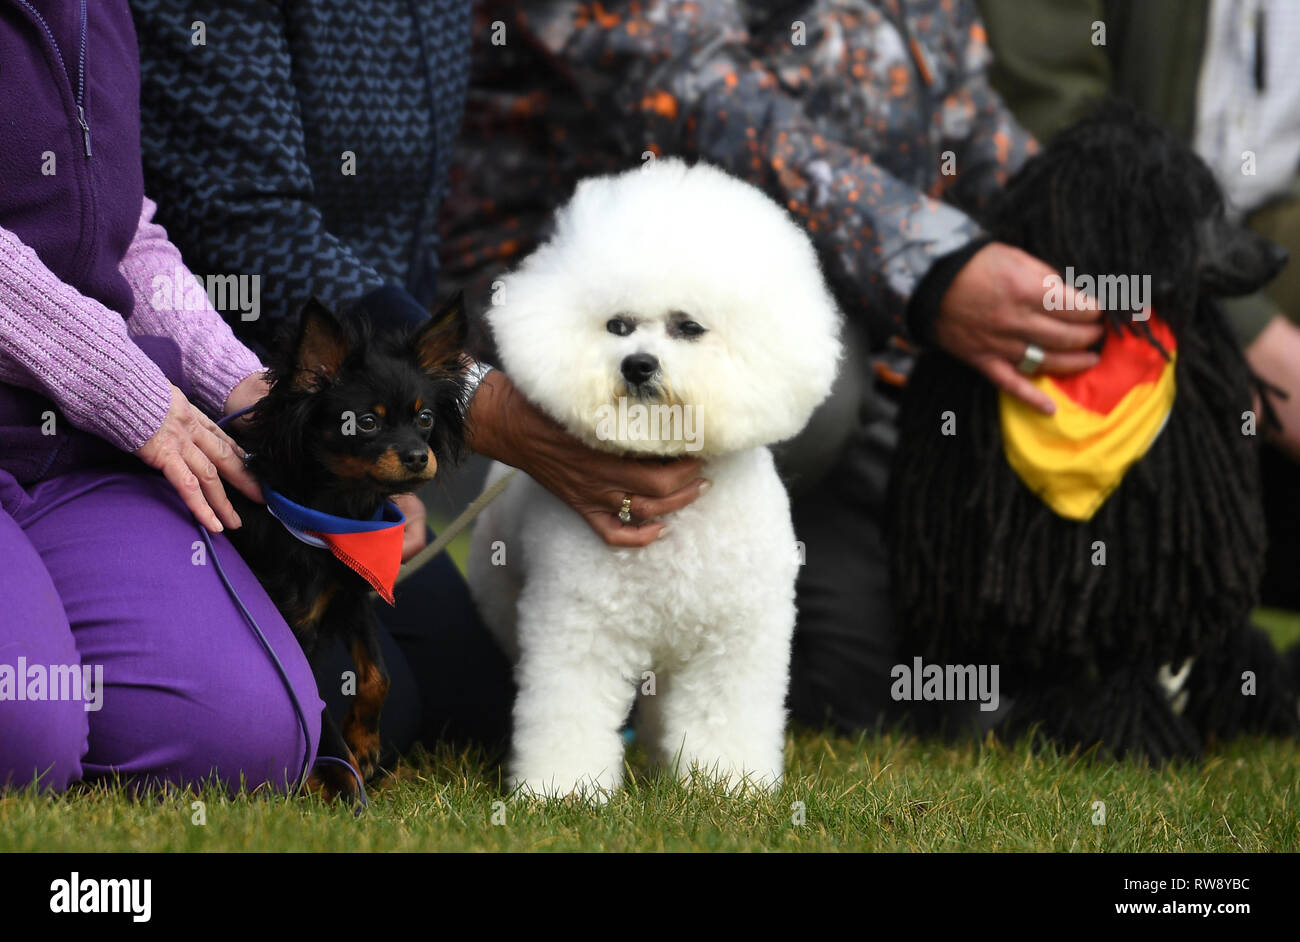 Russian Toy dog named Pride (left) and a Bichon Frise named